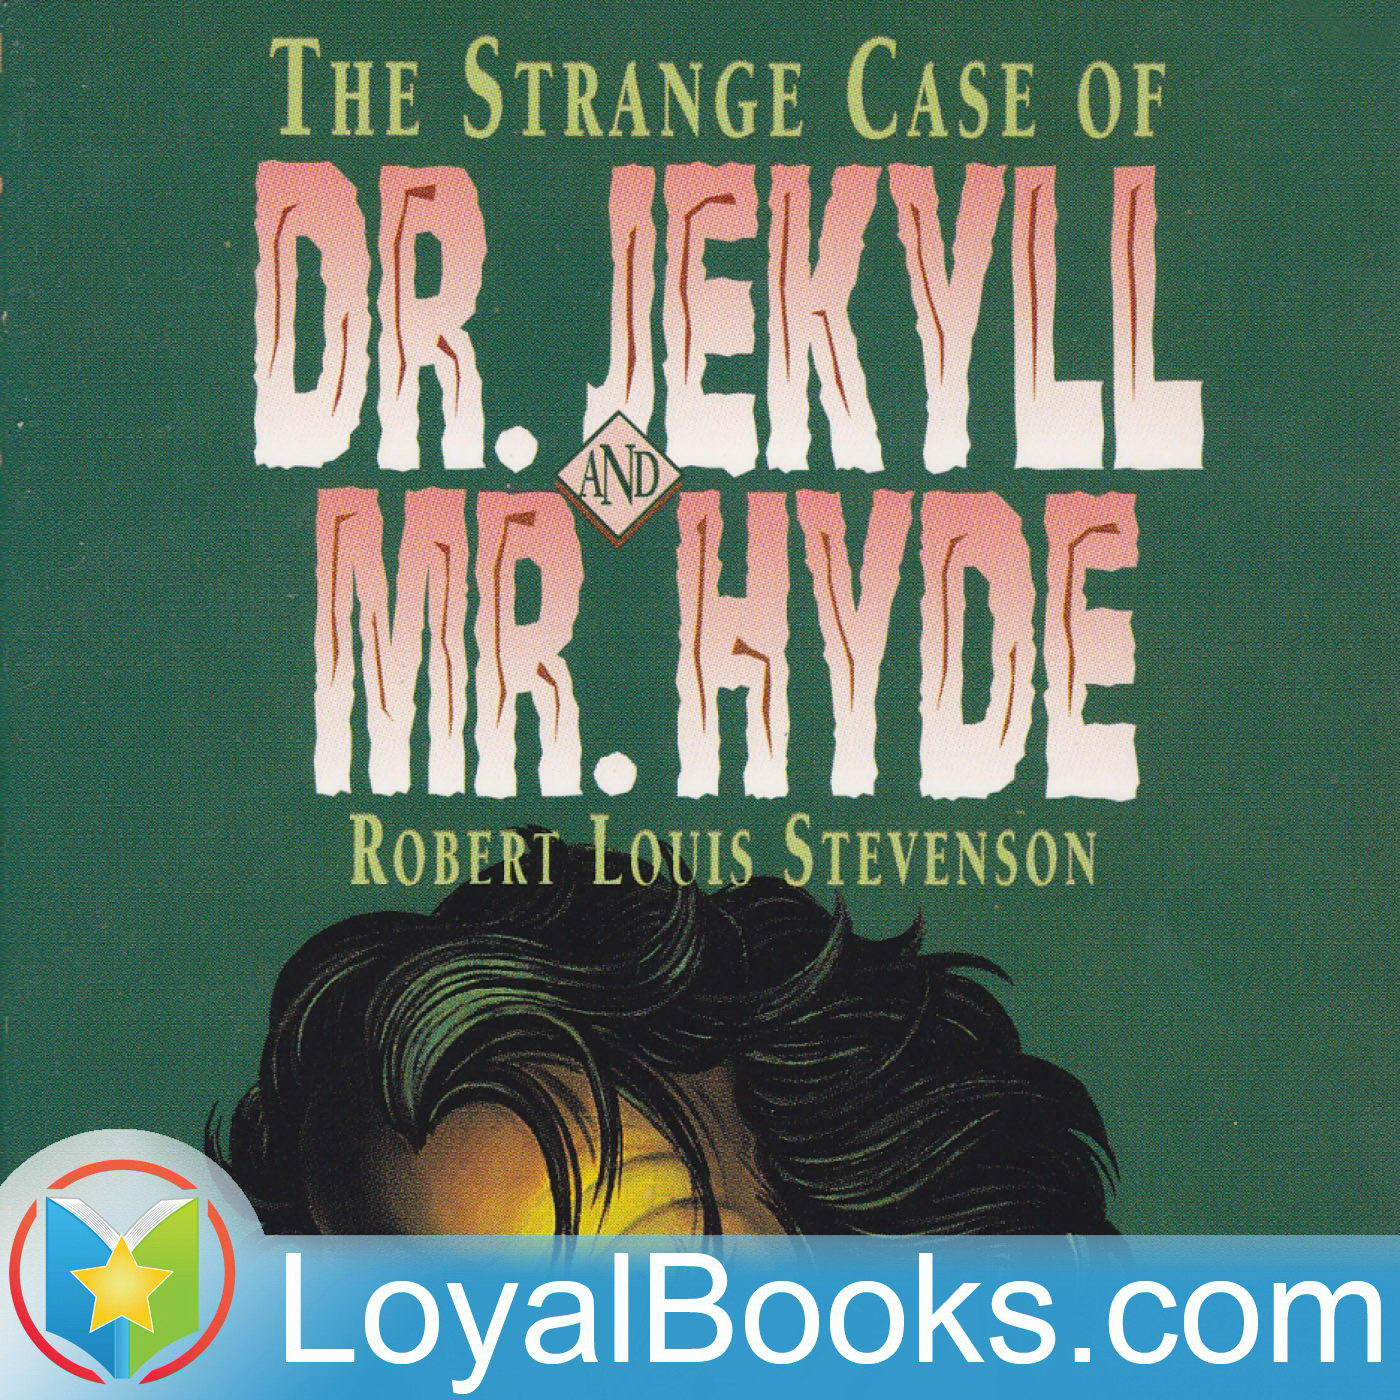 <![CDATA[The Strange Case of Dr. Jekyll And Mr. Hyde by Robert Louis Stevenson]]>